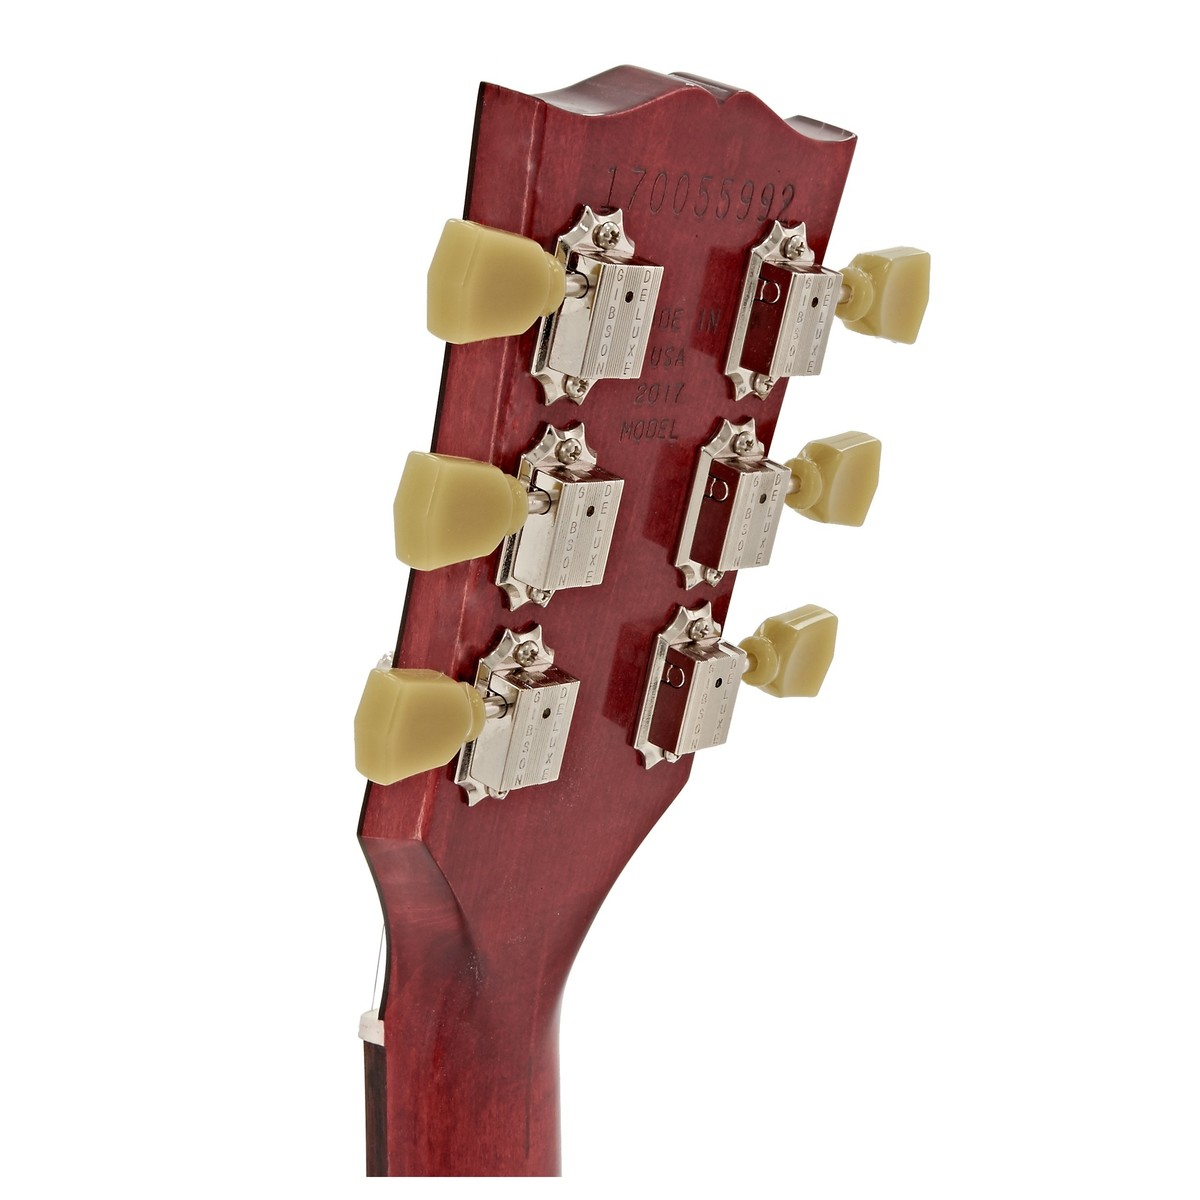 gibson sg faded t electric guitar worn cherry 2017 at. Black Bedroom Furniture Sets. Home Design Ideas